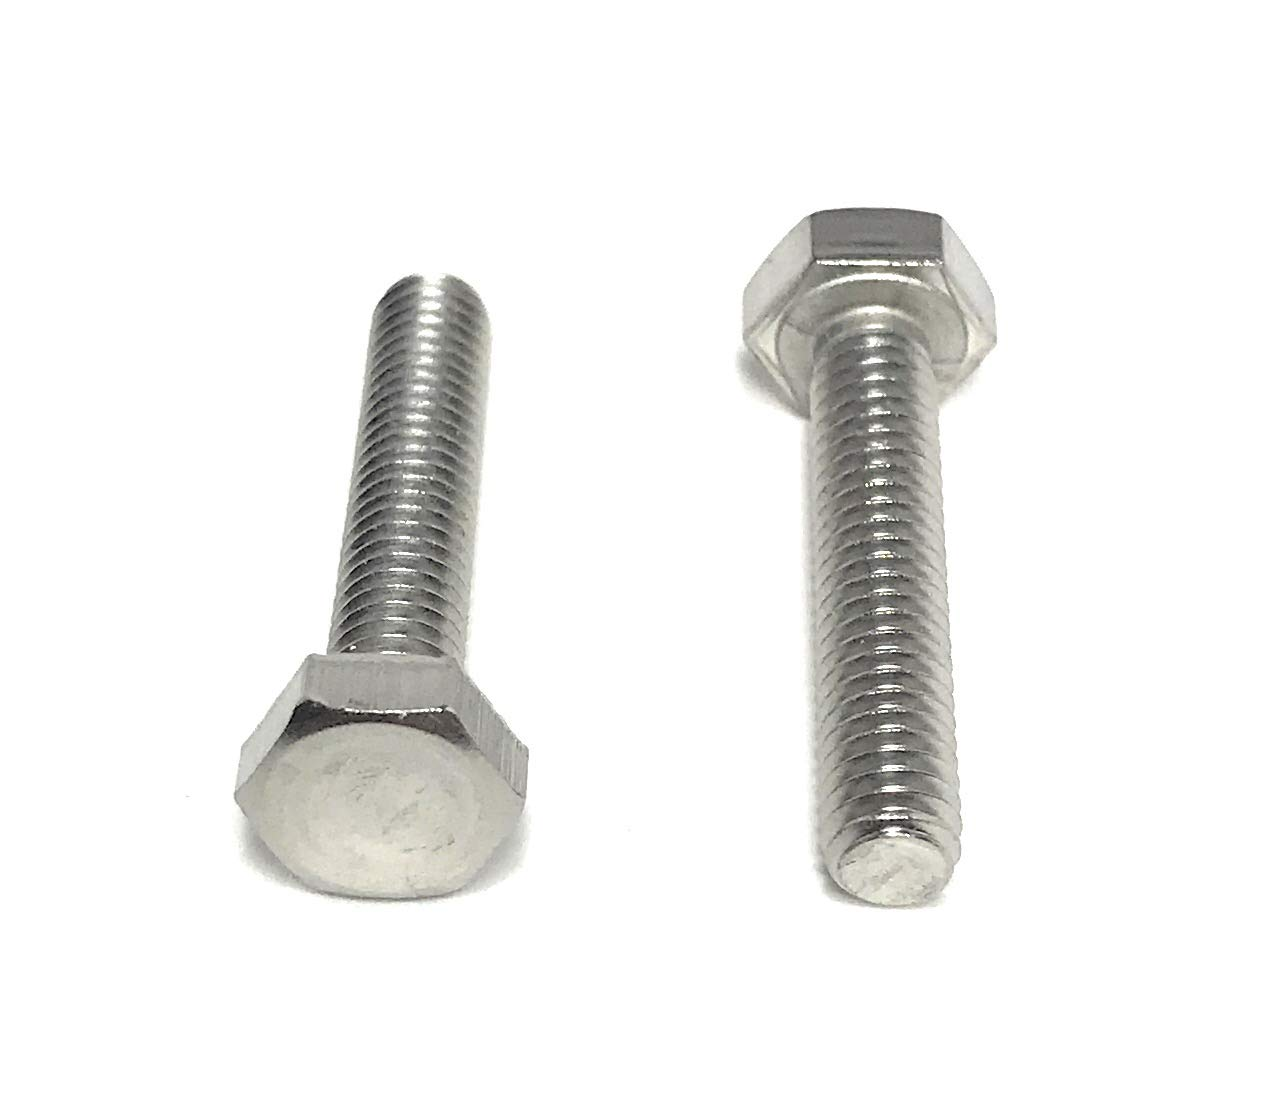 M6 X 40 Hex Head Set Screws Fully Thread Bolts A2 stainless DIN 933-4 pack